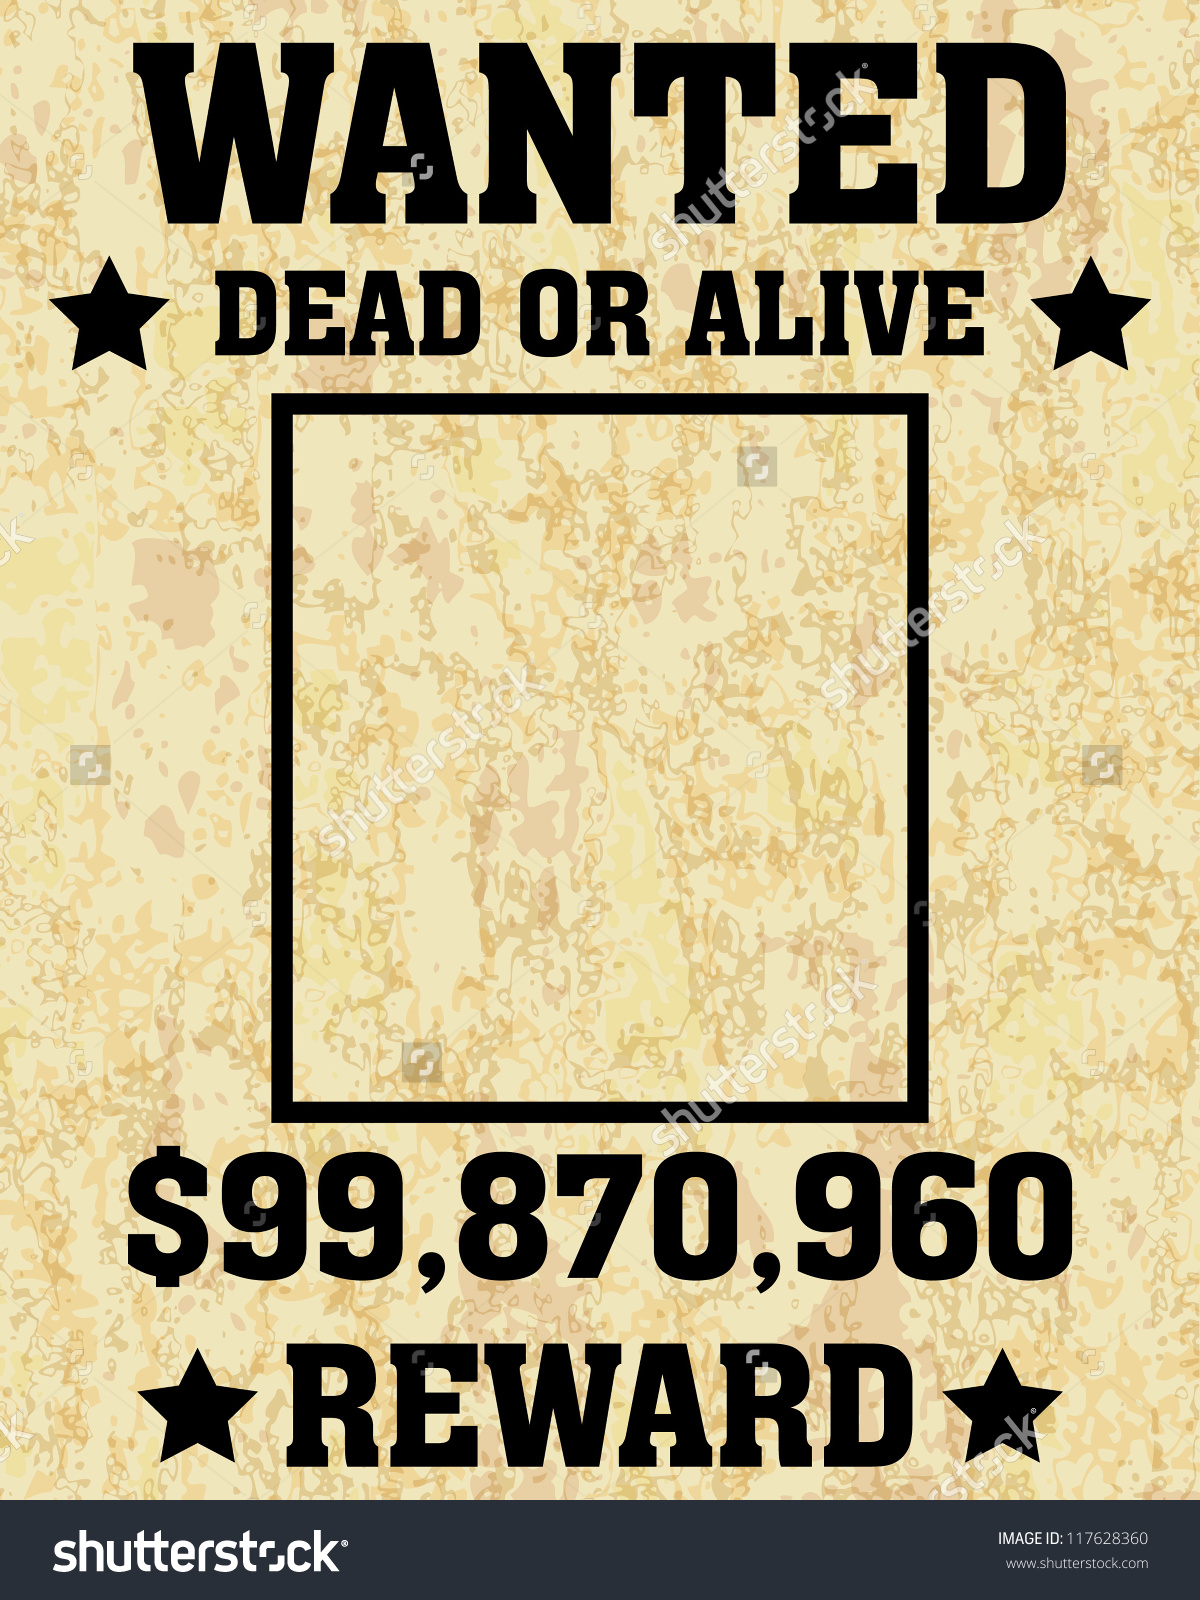 wanted poster example - shefftunes.tk